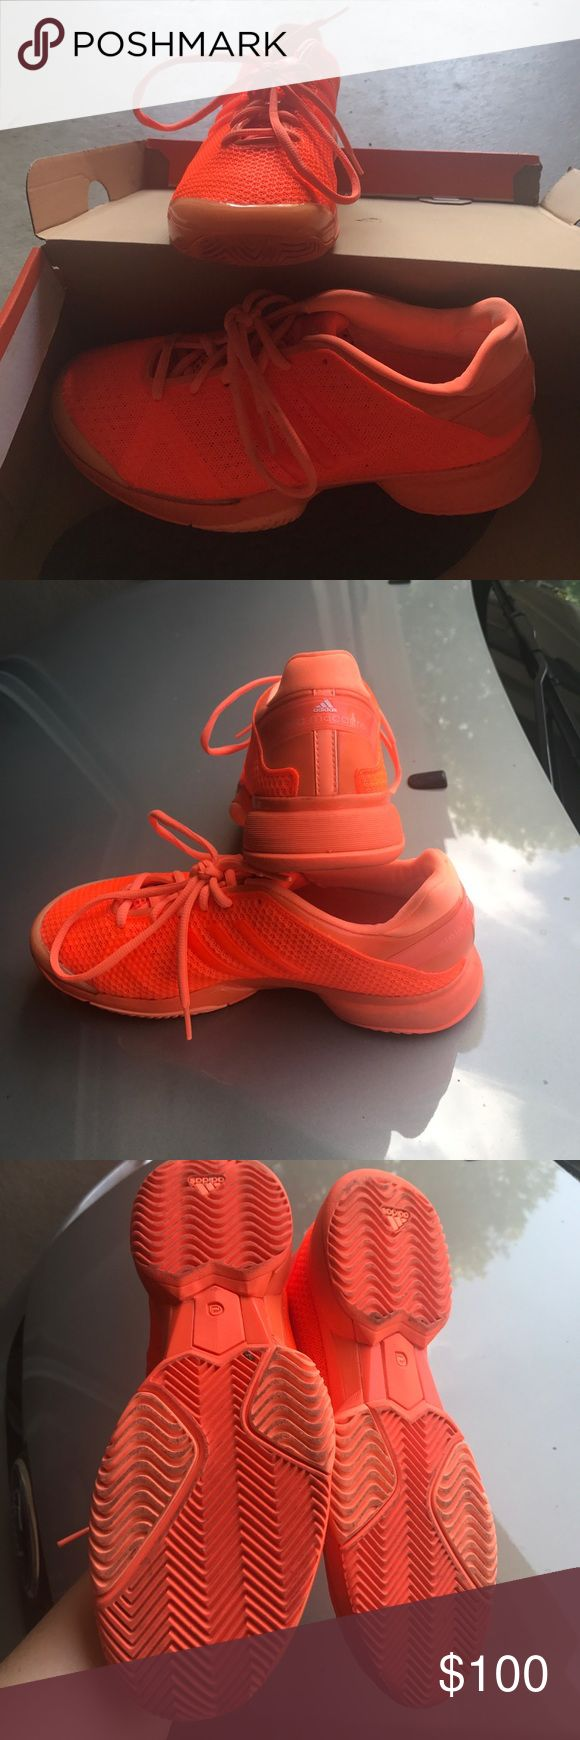 Adidas by Stella McCarthy Orange Sneaker 7.5 Awesome bright orange adidias by Stella sneaker! Worn only one time. No sign of wear. Adidas by Stella McCartney Shoes Athletic Shoes